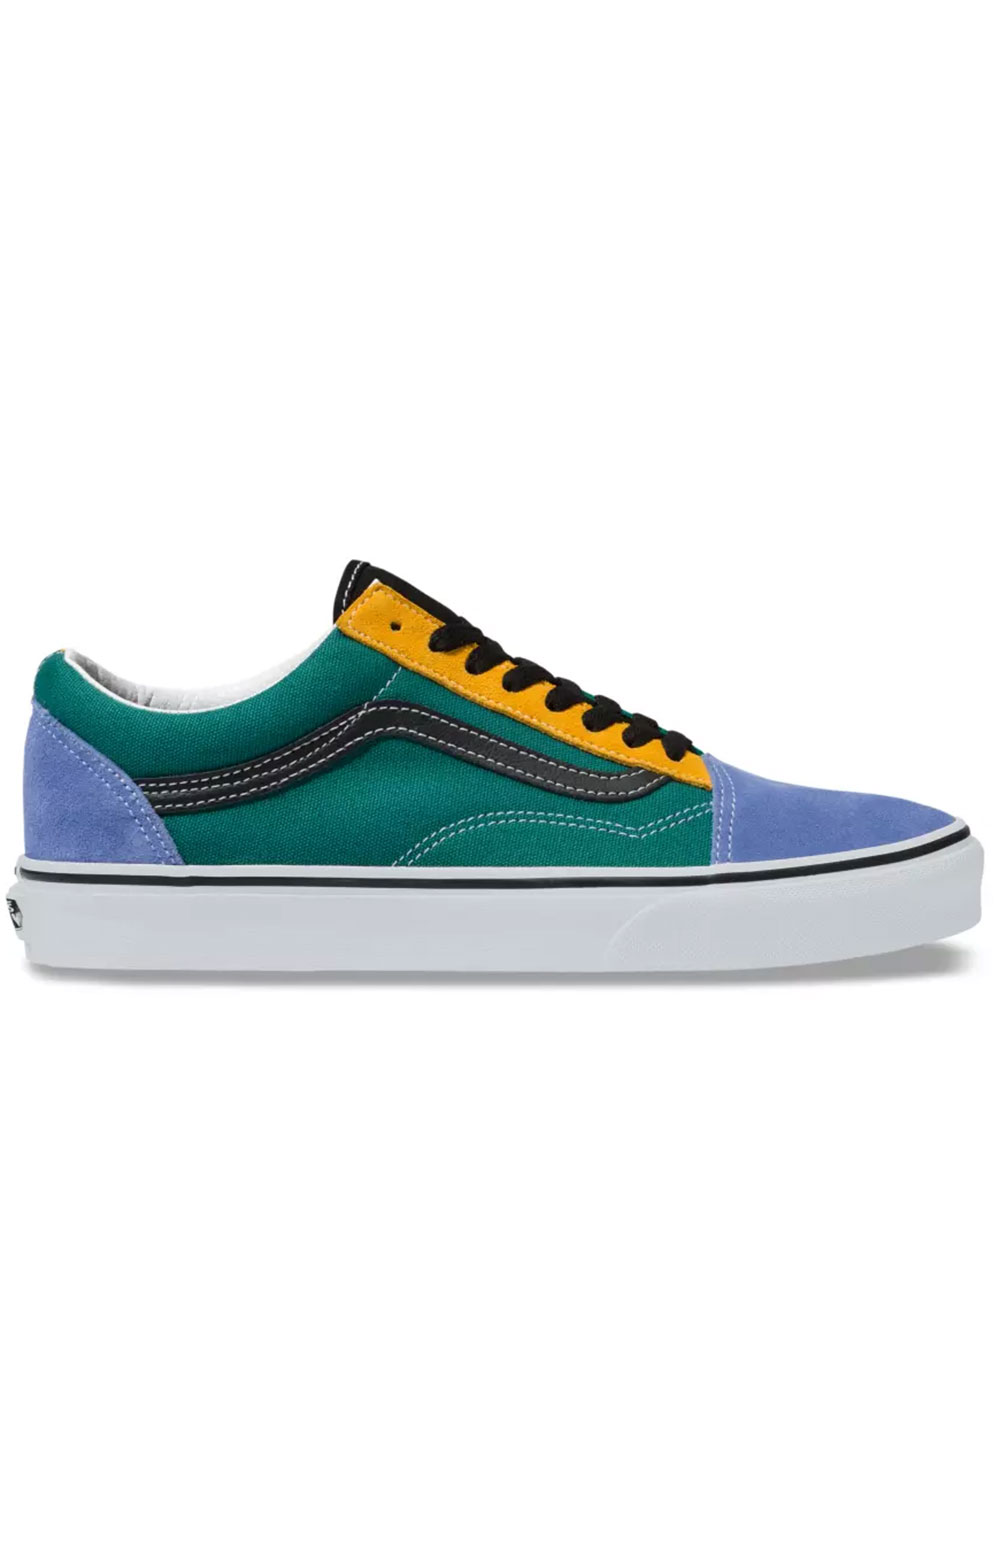 (BV5TGN) Mix & Match Old Skool Shoe - Cadmium Yellow/Tidepool